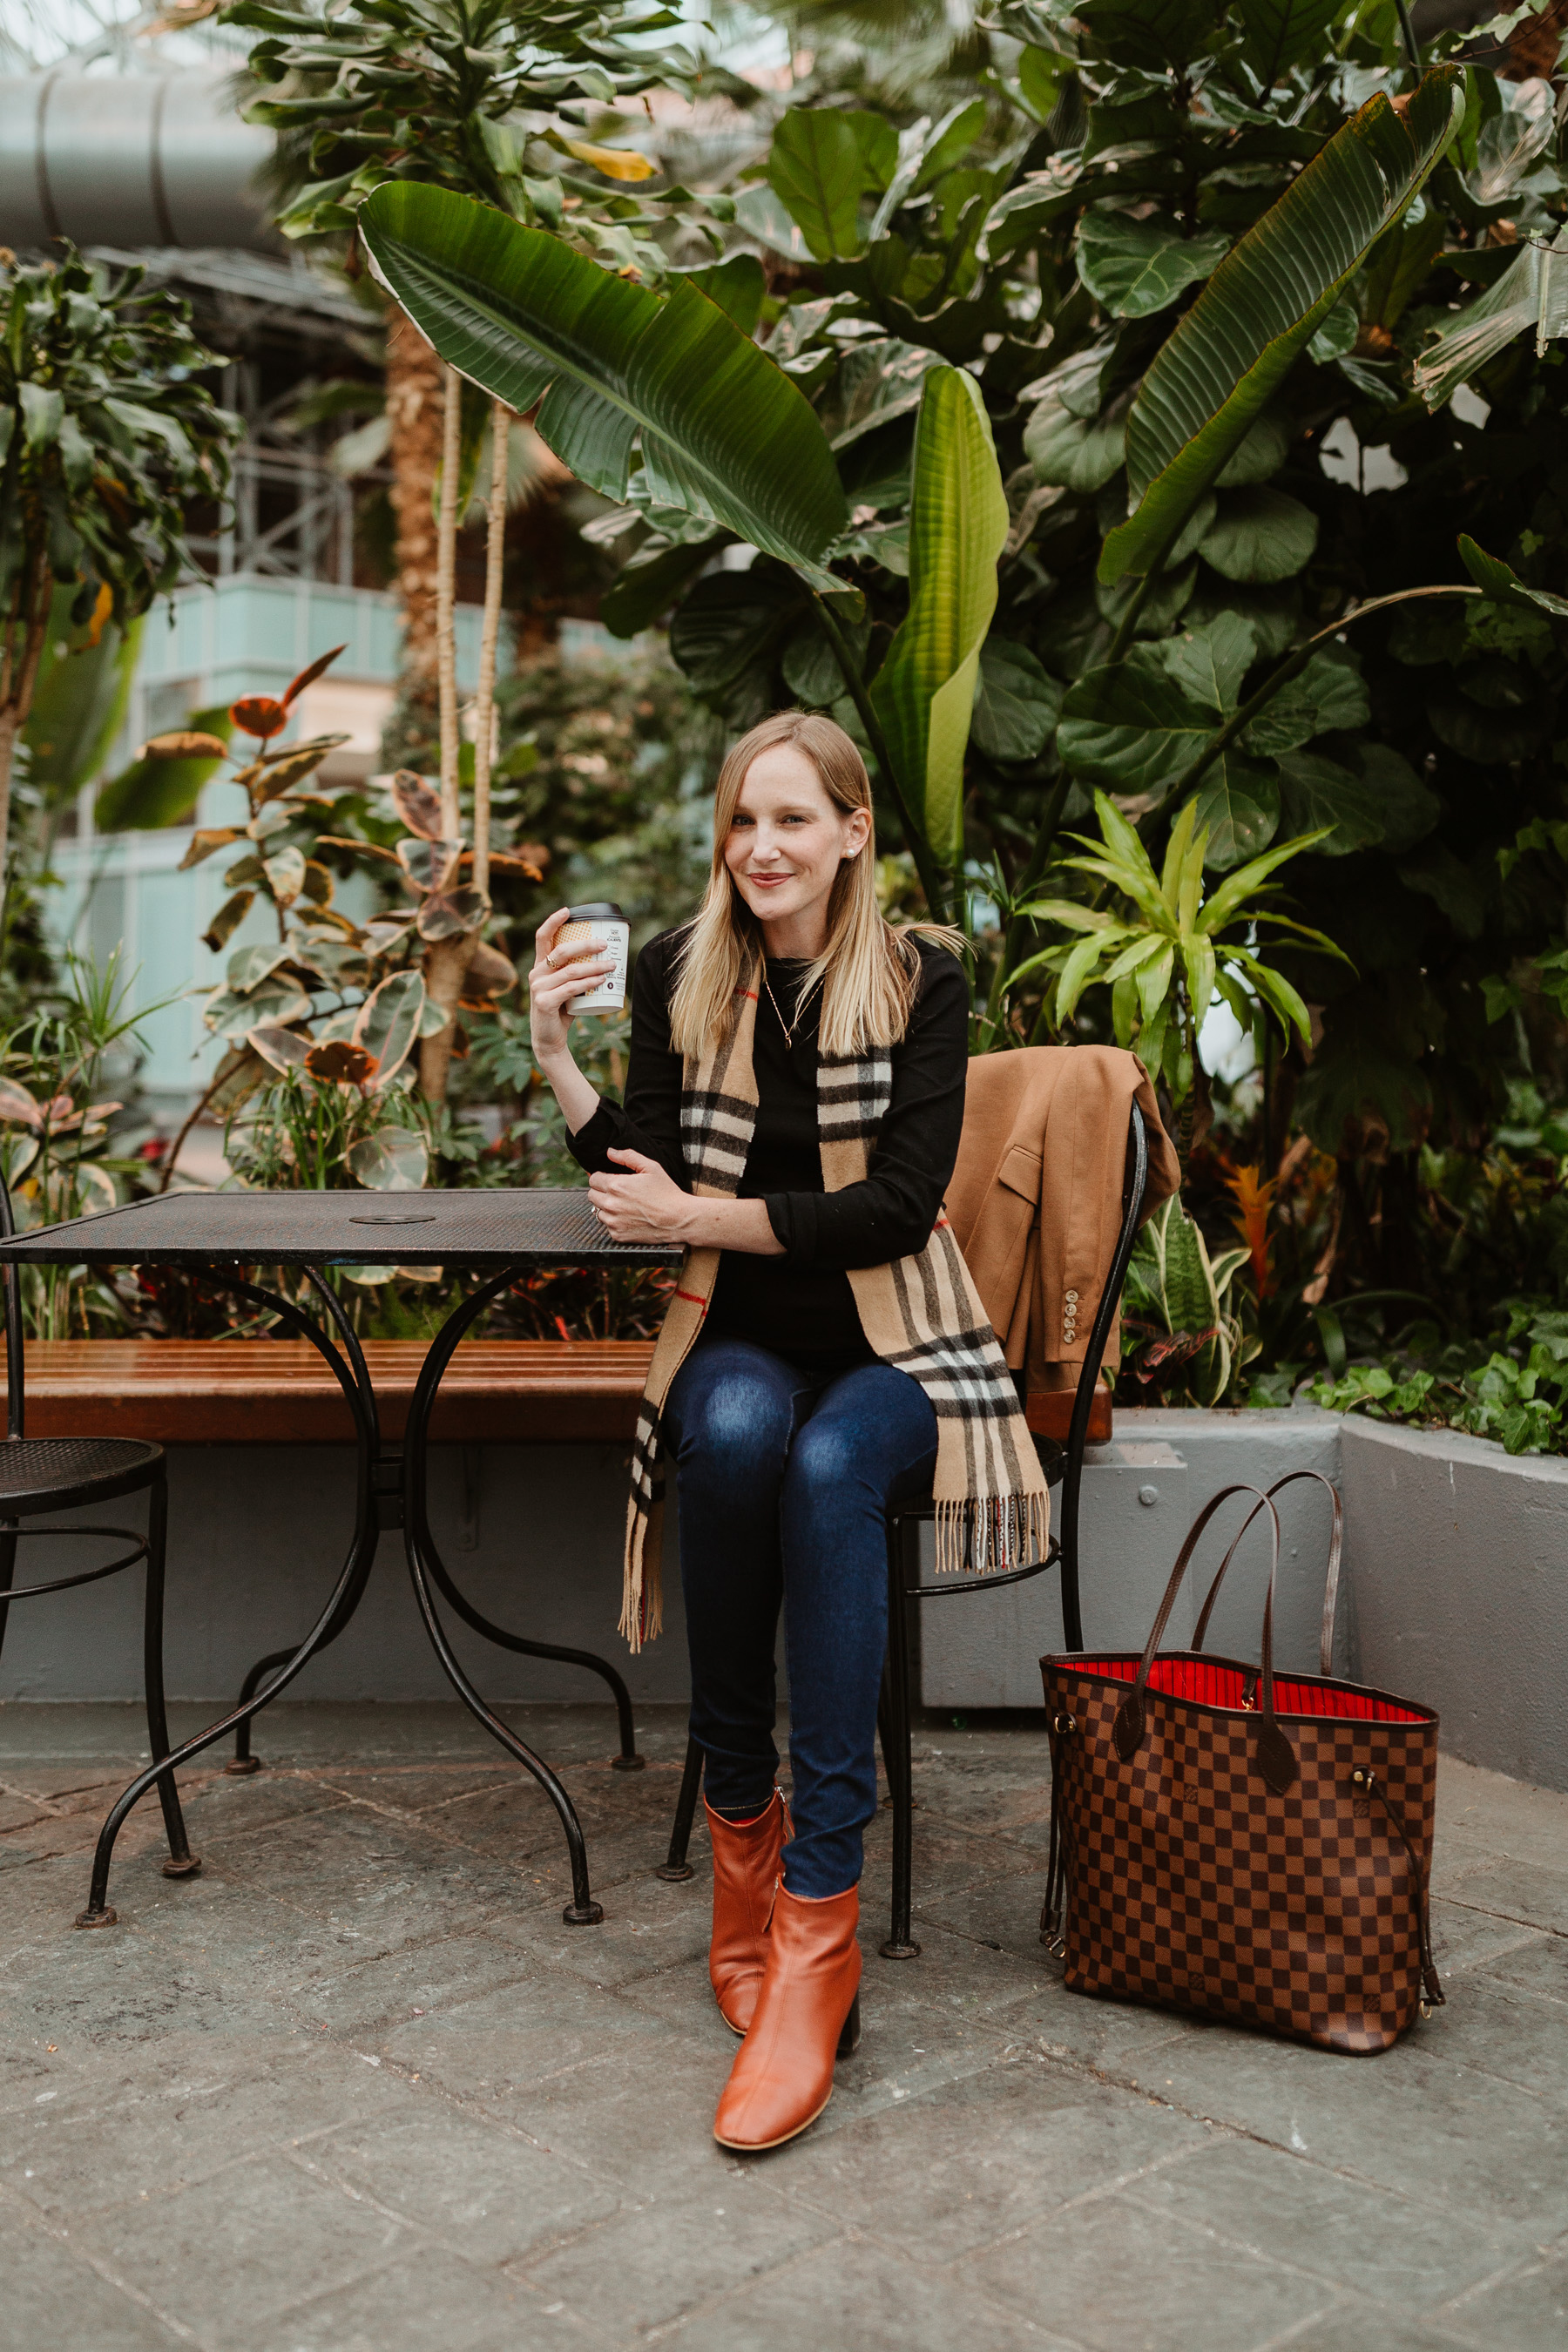 """Kelly's Outfit: Everlane Day Boot c/o / Gold Initial Necklace /J.Crew Regent Blazer /Softest """"Modern Boatneck"""" Tee by Gap / Louis Vuitton MM Neverfull Tote / Burberry Scarf/ Old Navy Rockstar Jeans"""